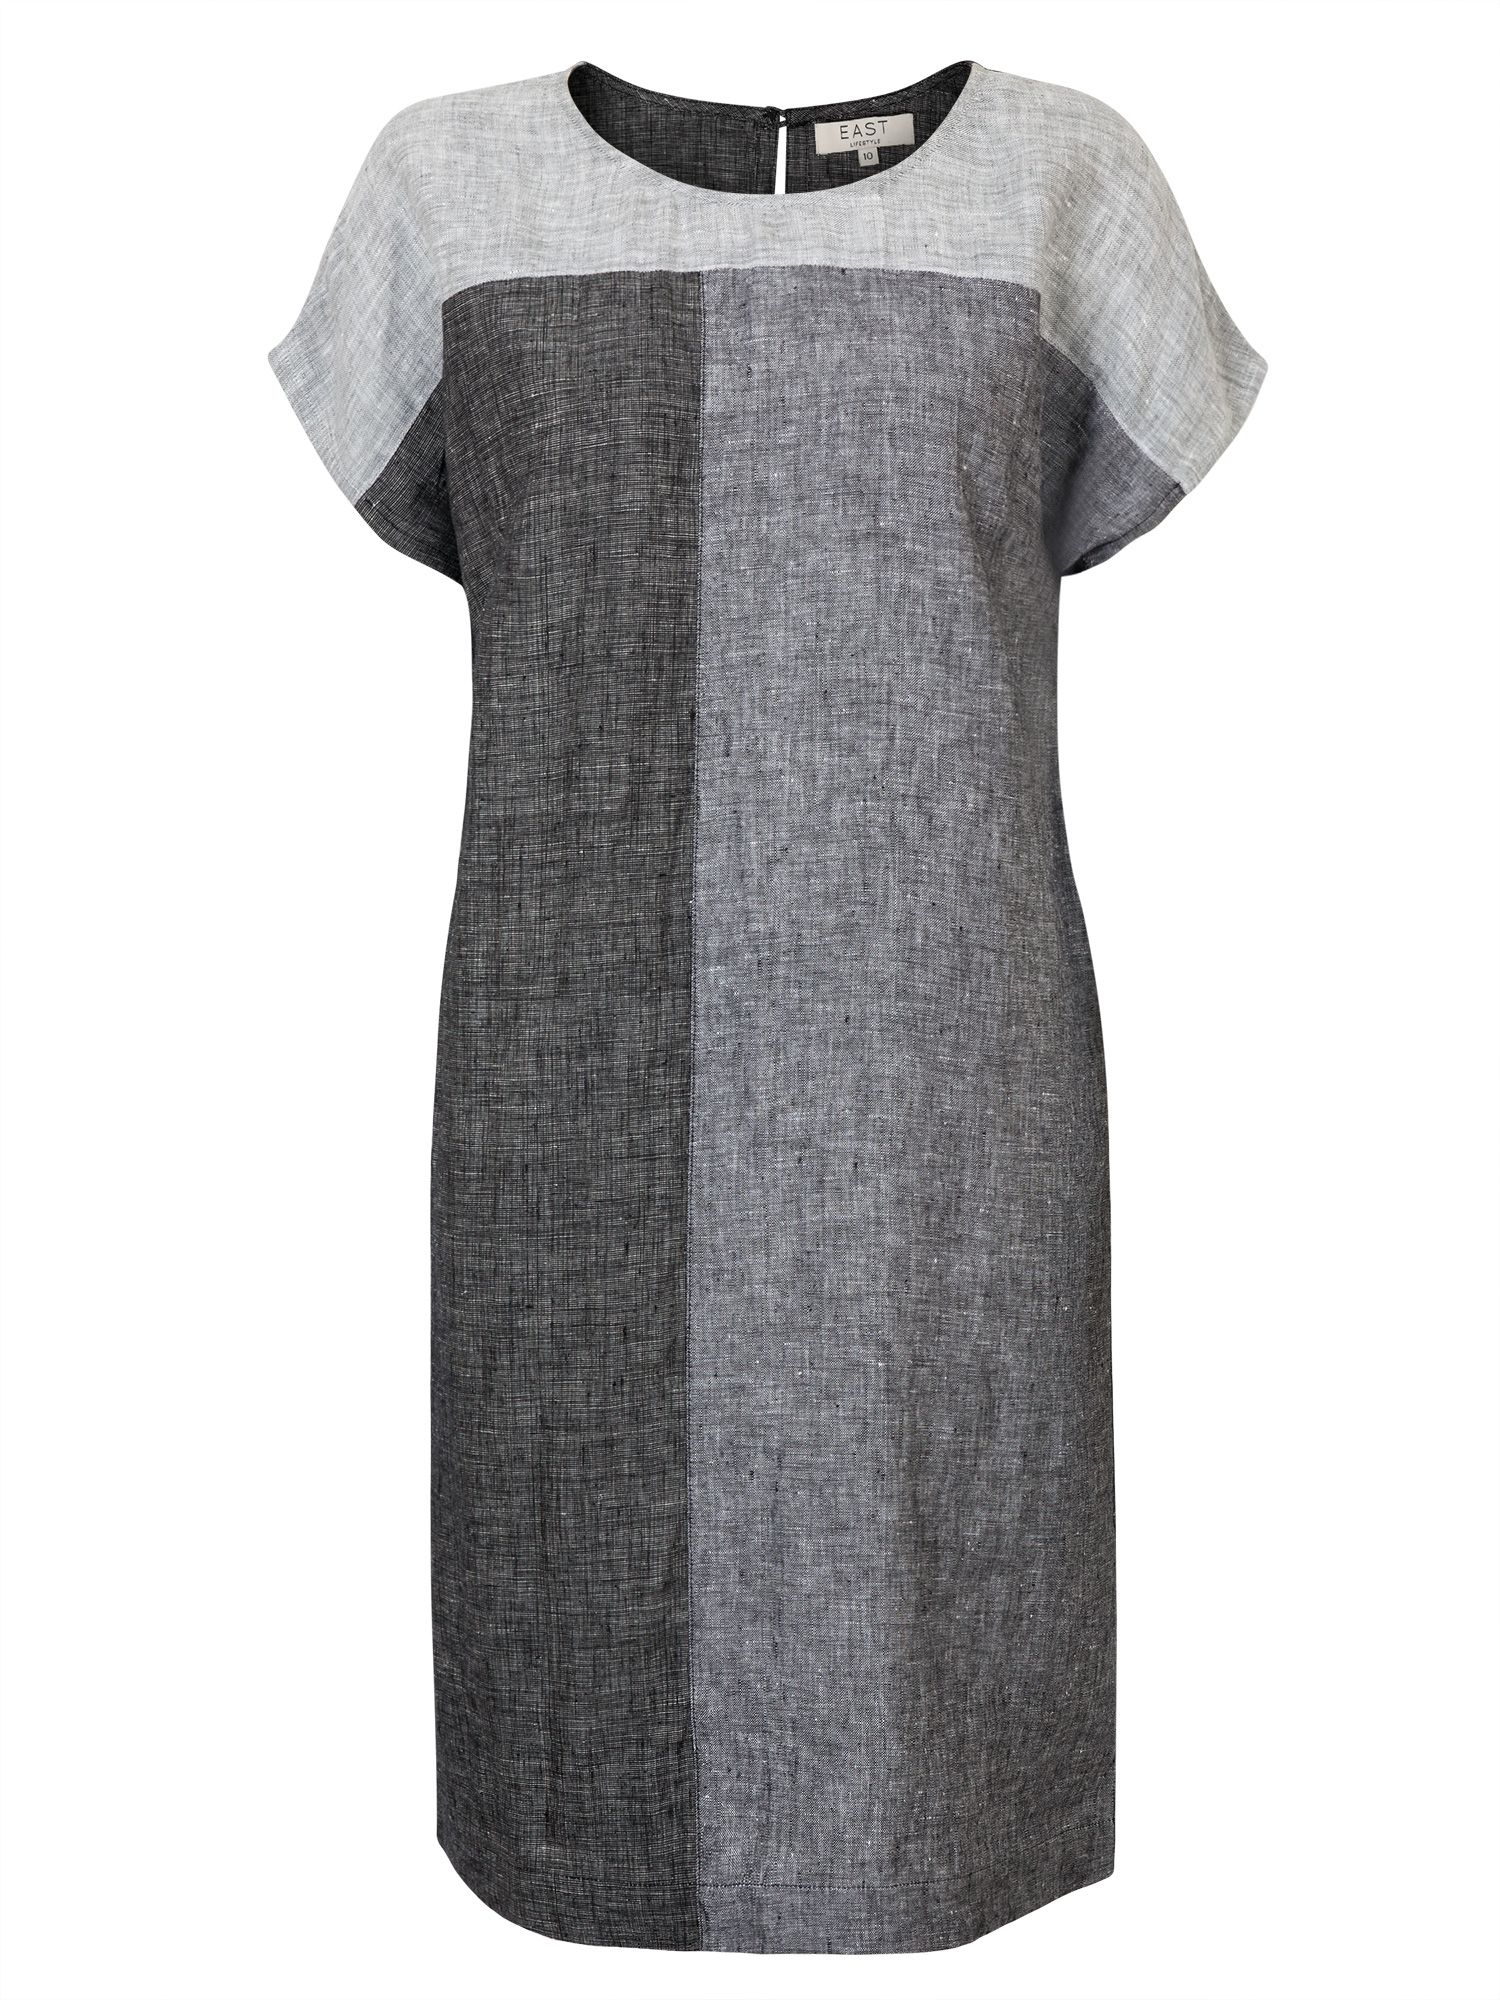 East Linen X Dye Colour Block Dress, Grey